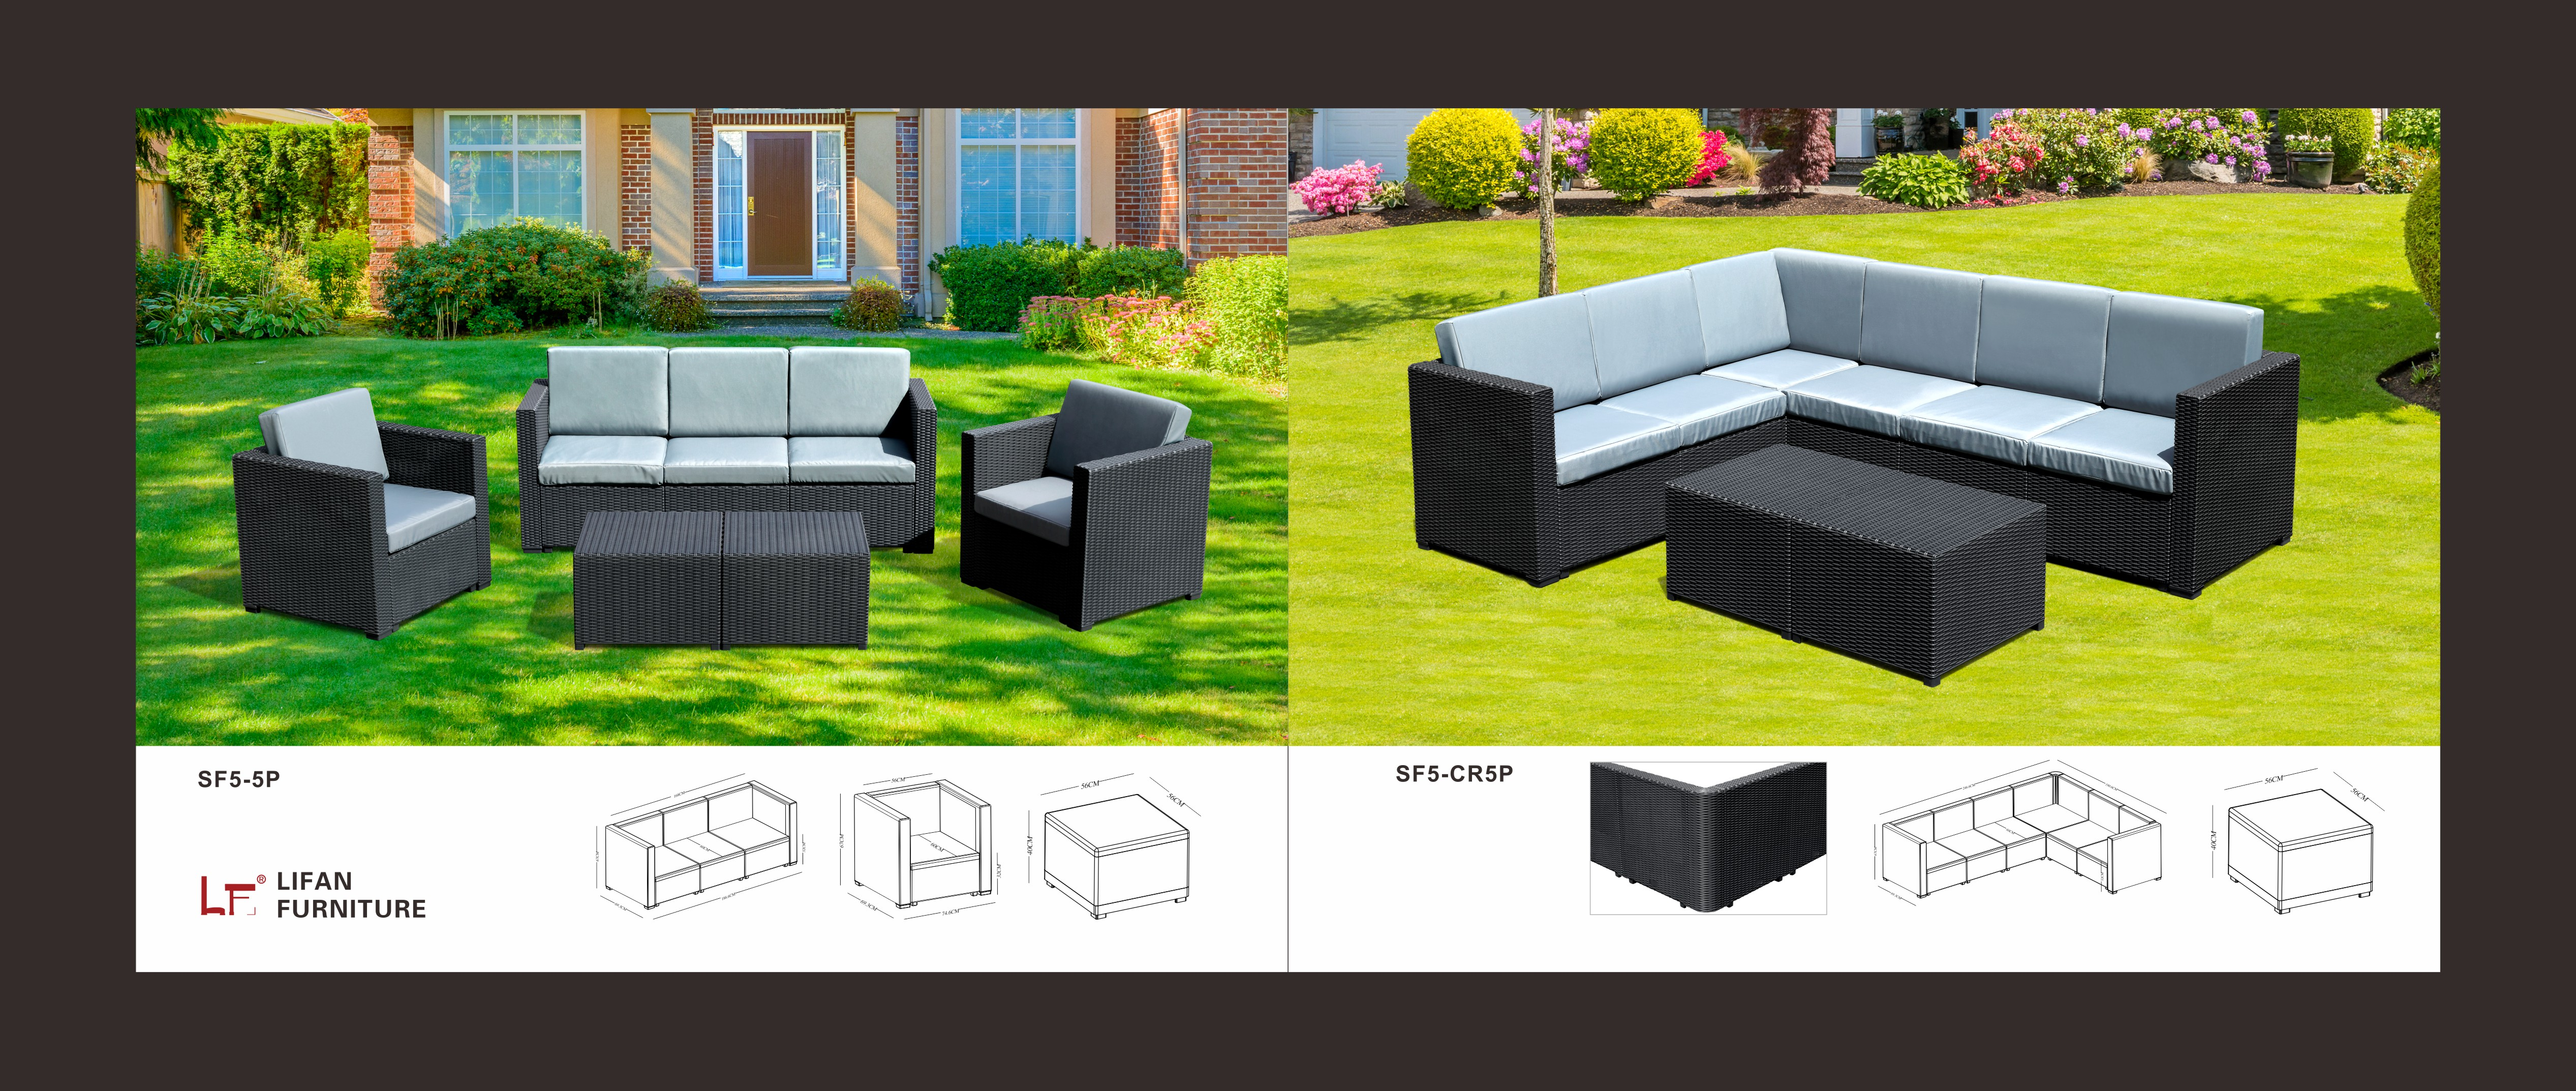 Waterproof Furniture Patio Plastic Sofa